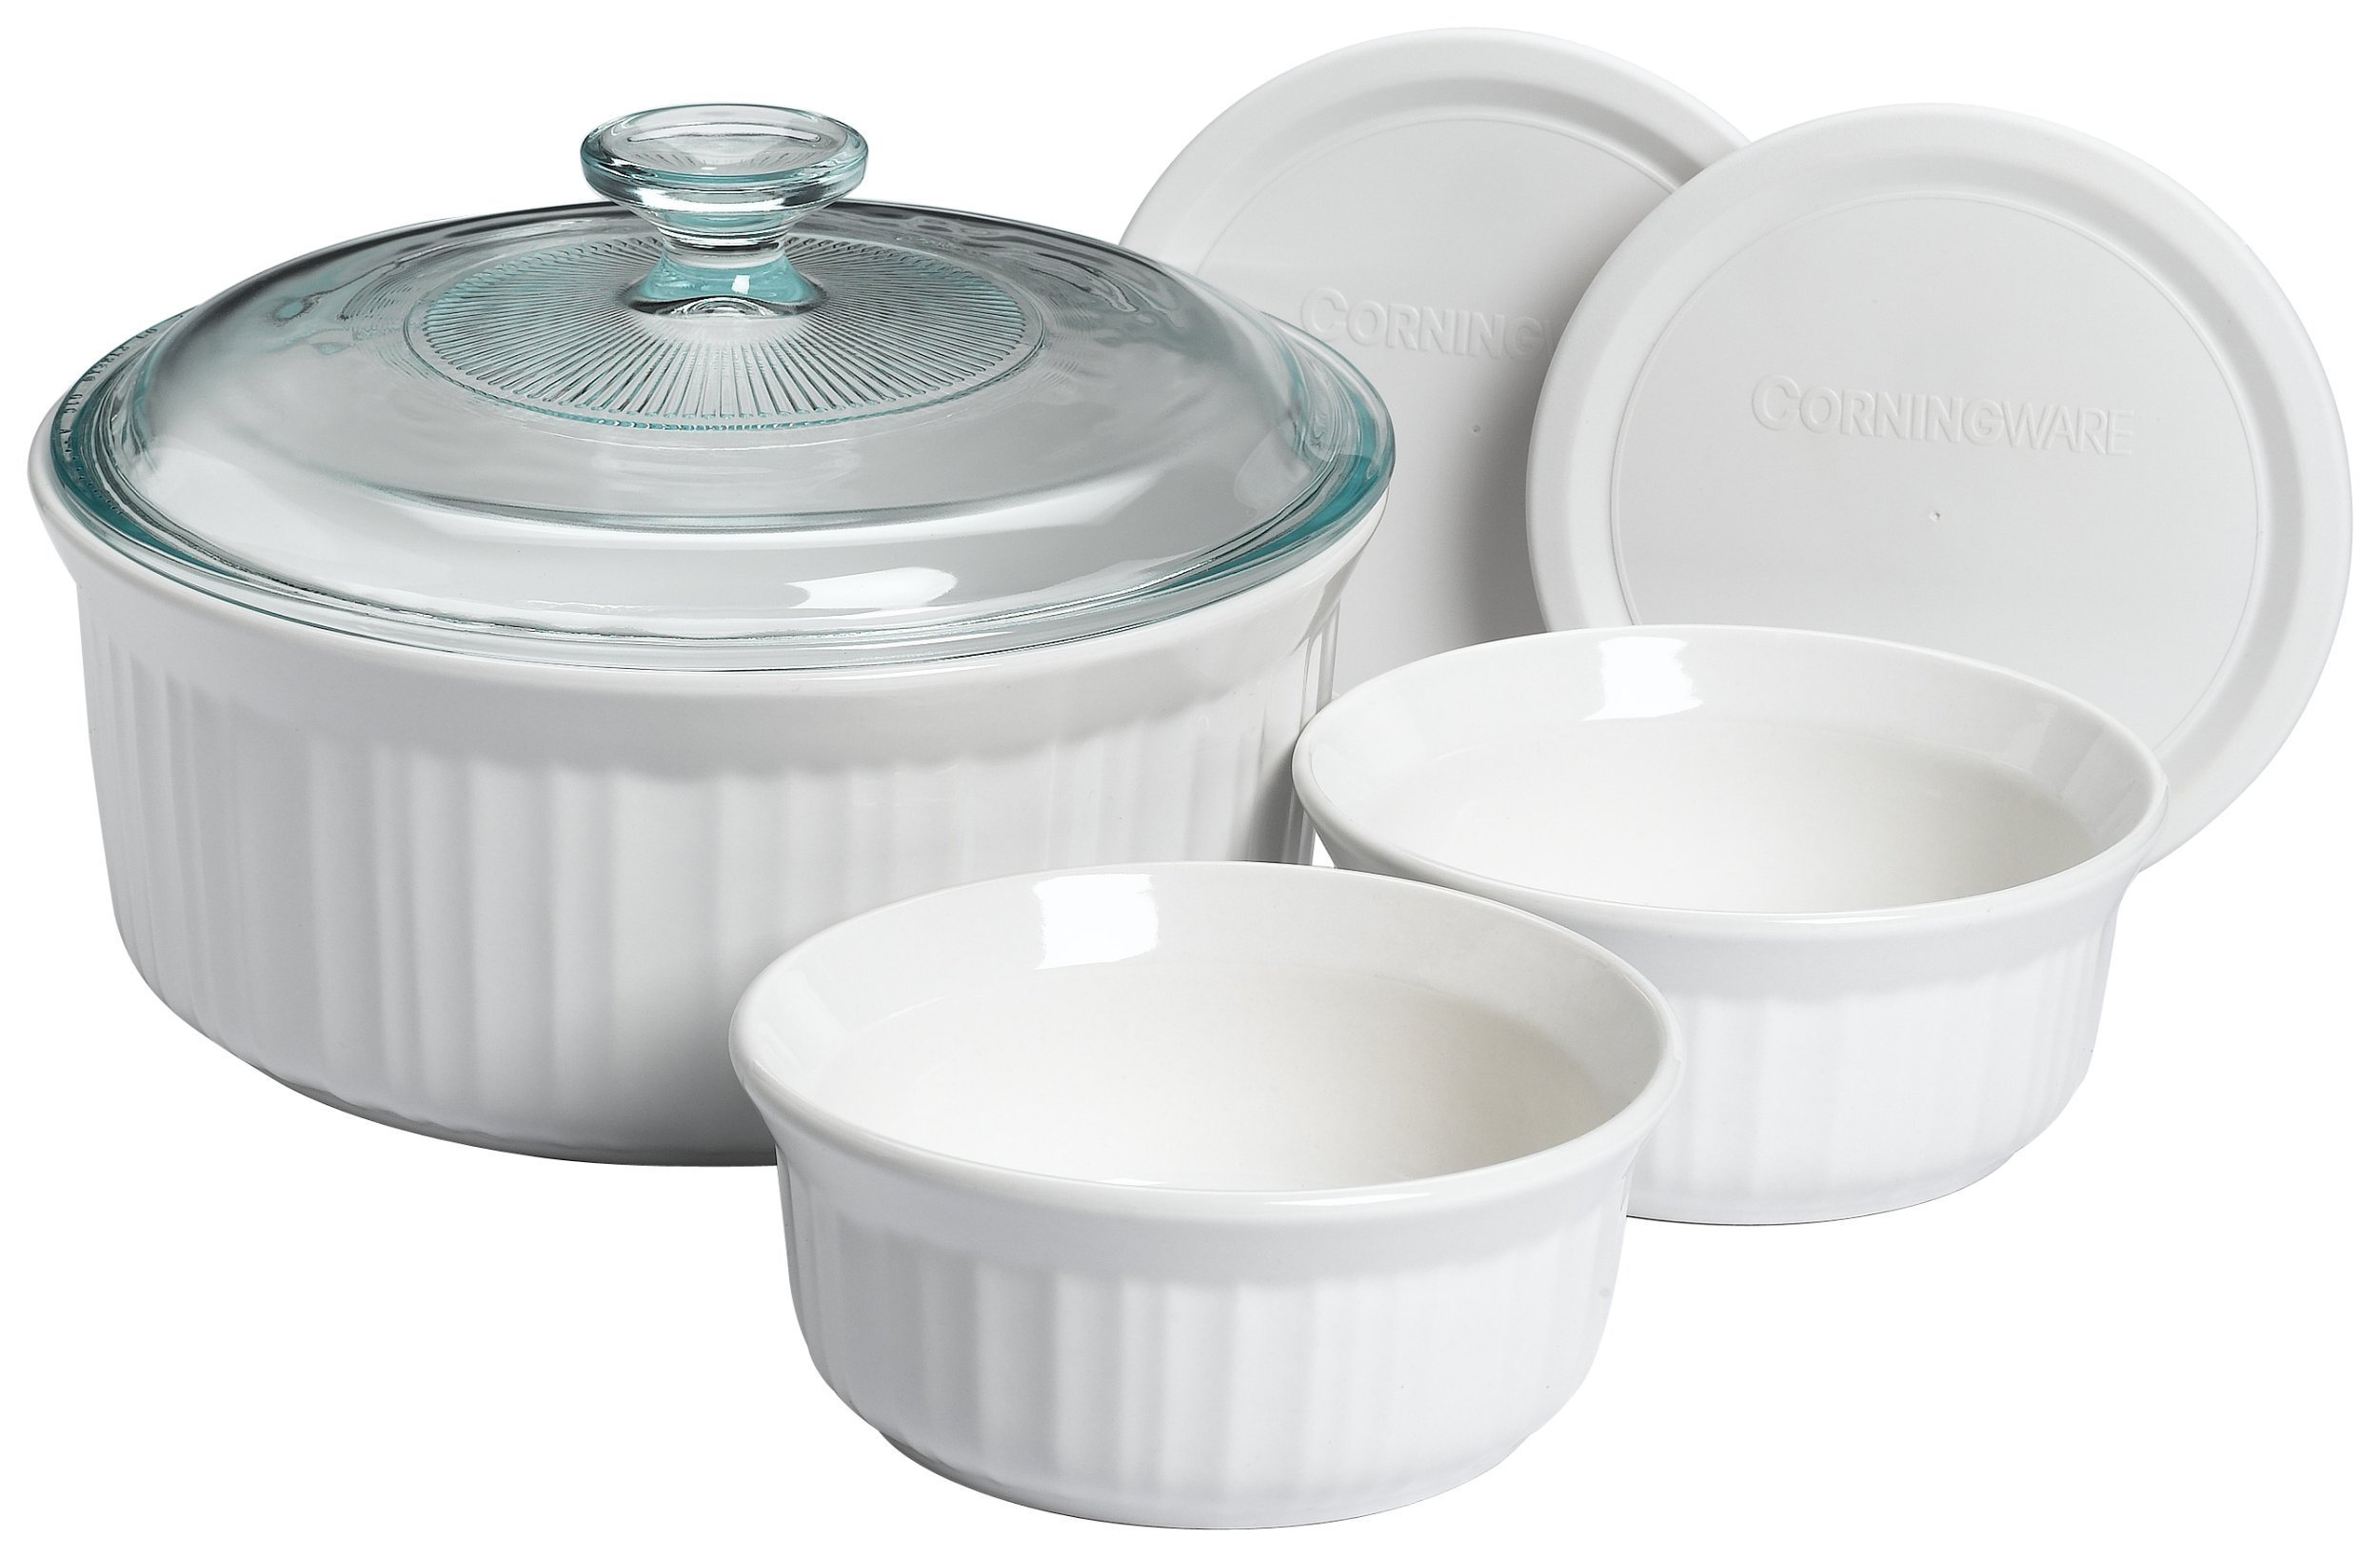 CorningWare French White 6-Piece Cooking and Baking Set